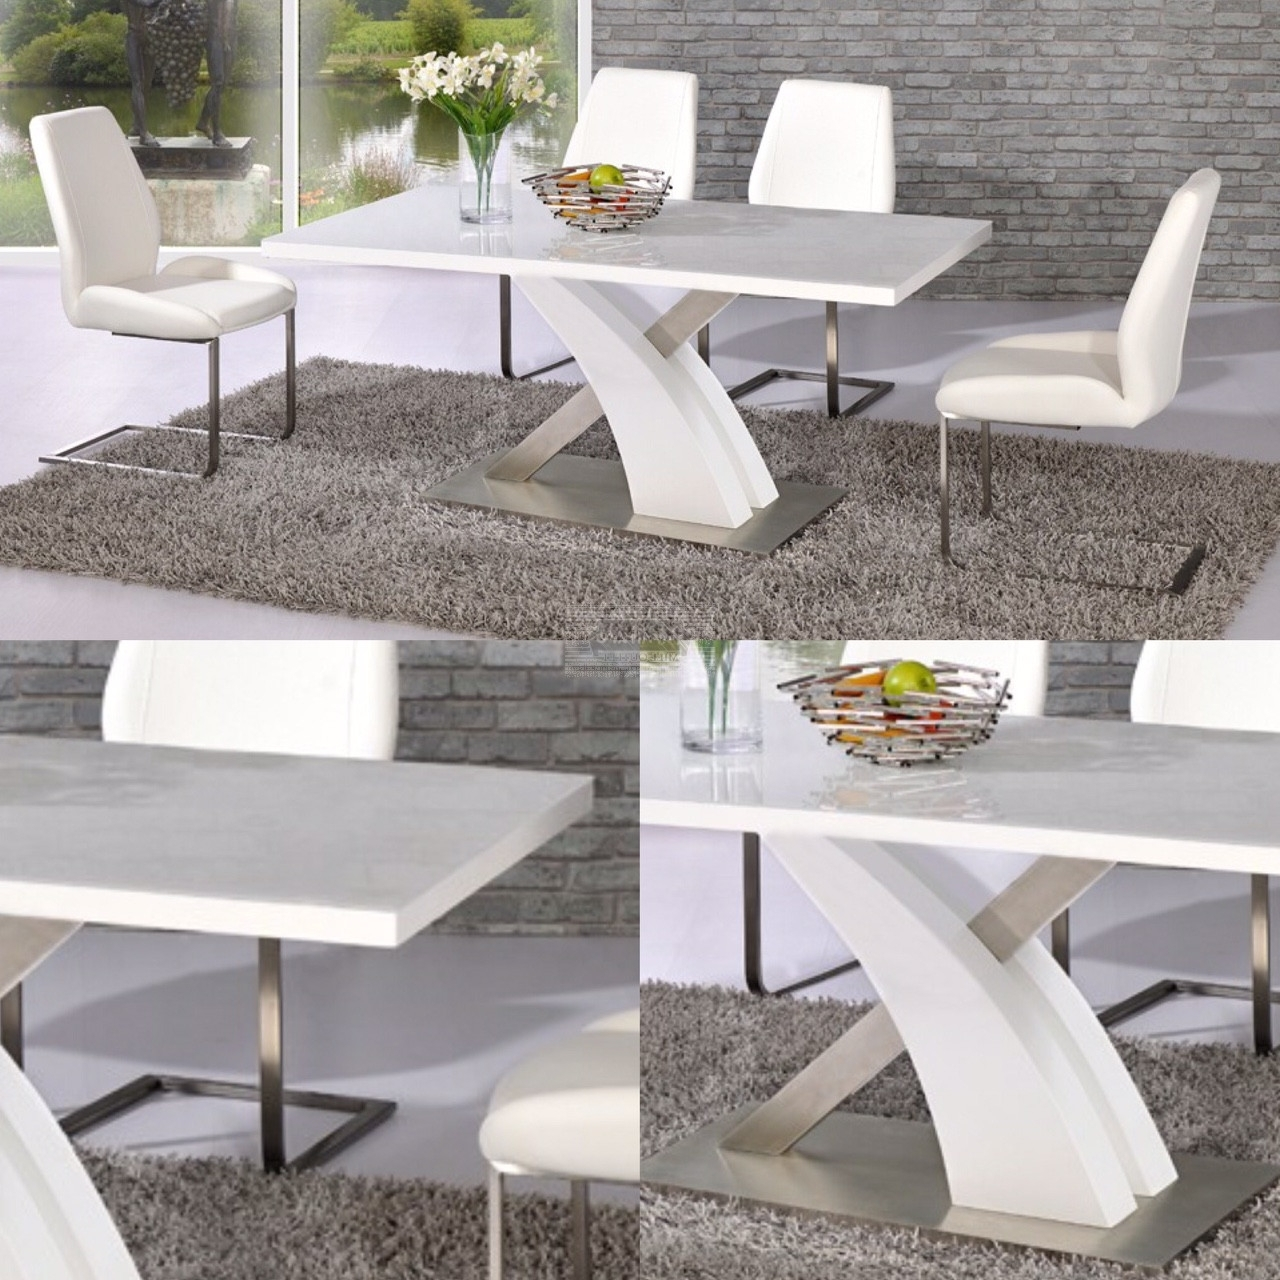 2018 Mayfair Extending Dining Table - 160Cm To 220Cm - Furniture Mill Outlet throughout Mayfair Dining Tables